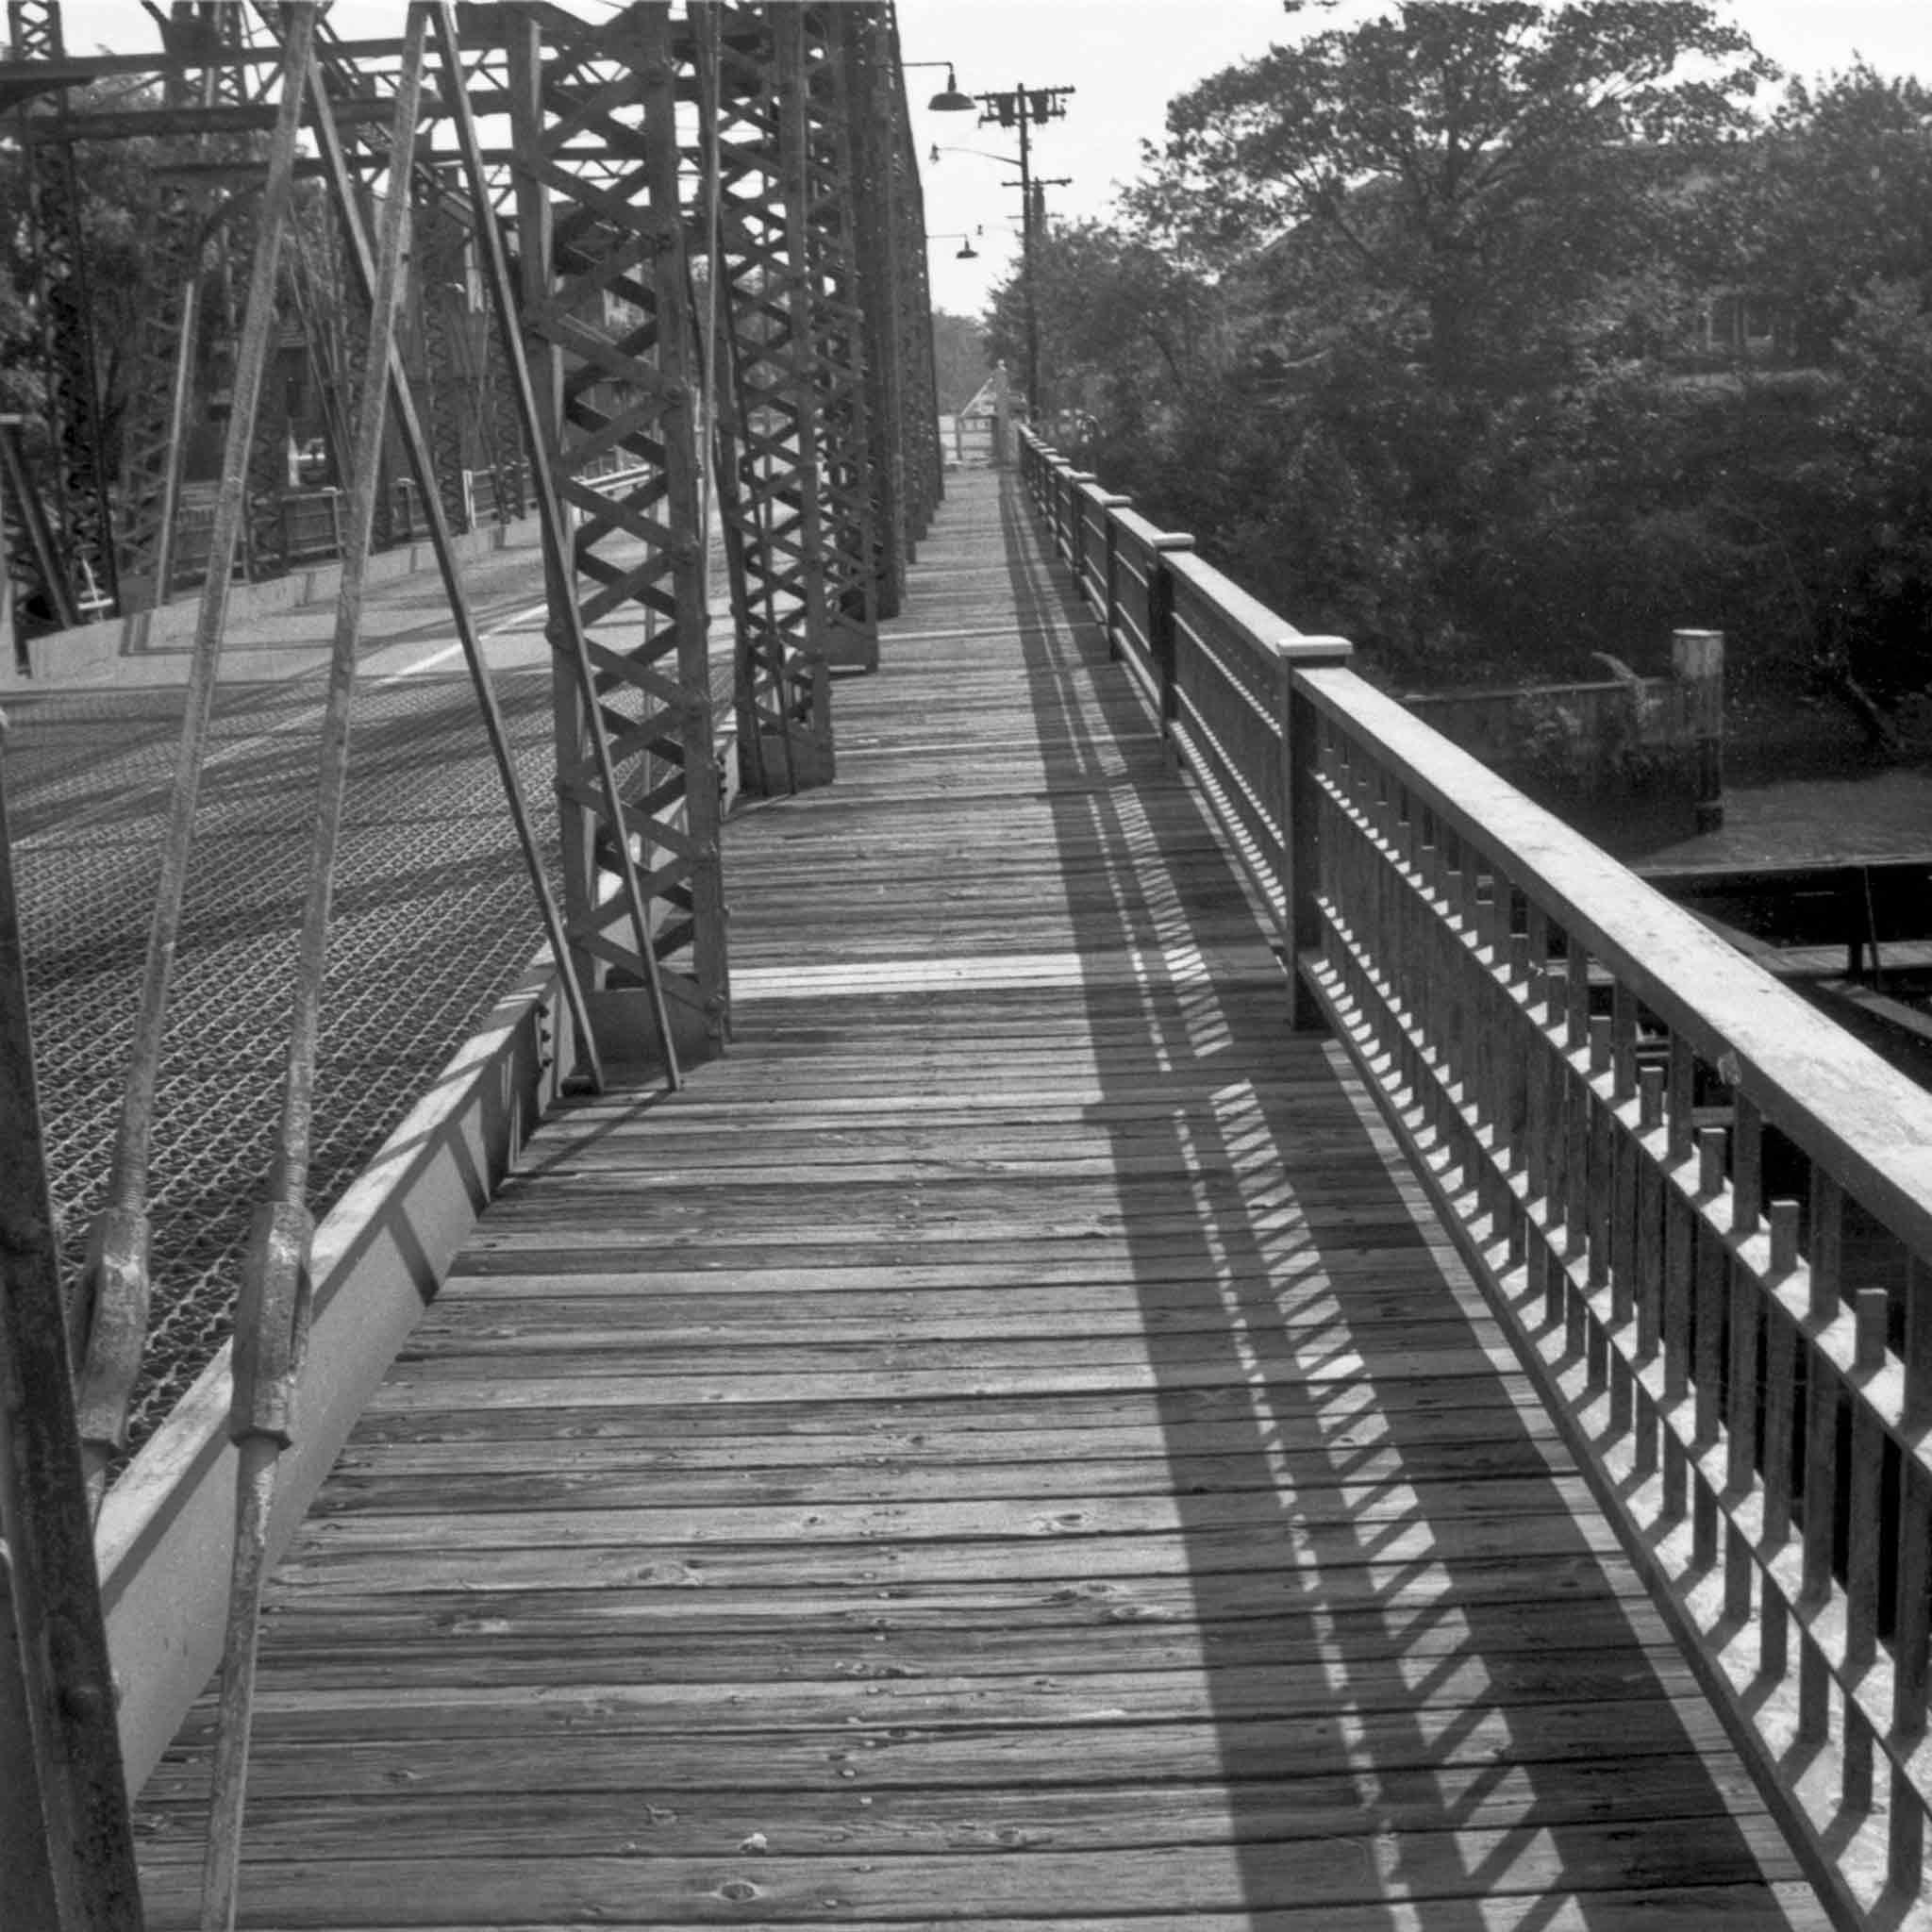 black and white image of a wooden walkway on a metal truss bridge with trees in the background